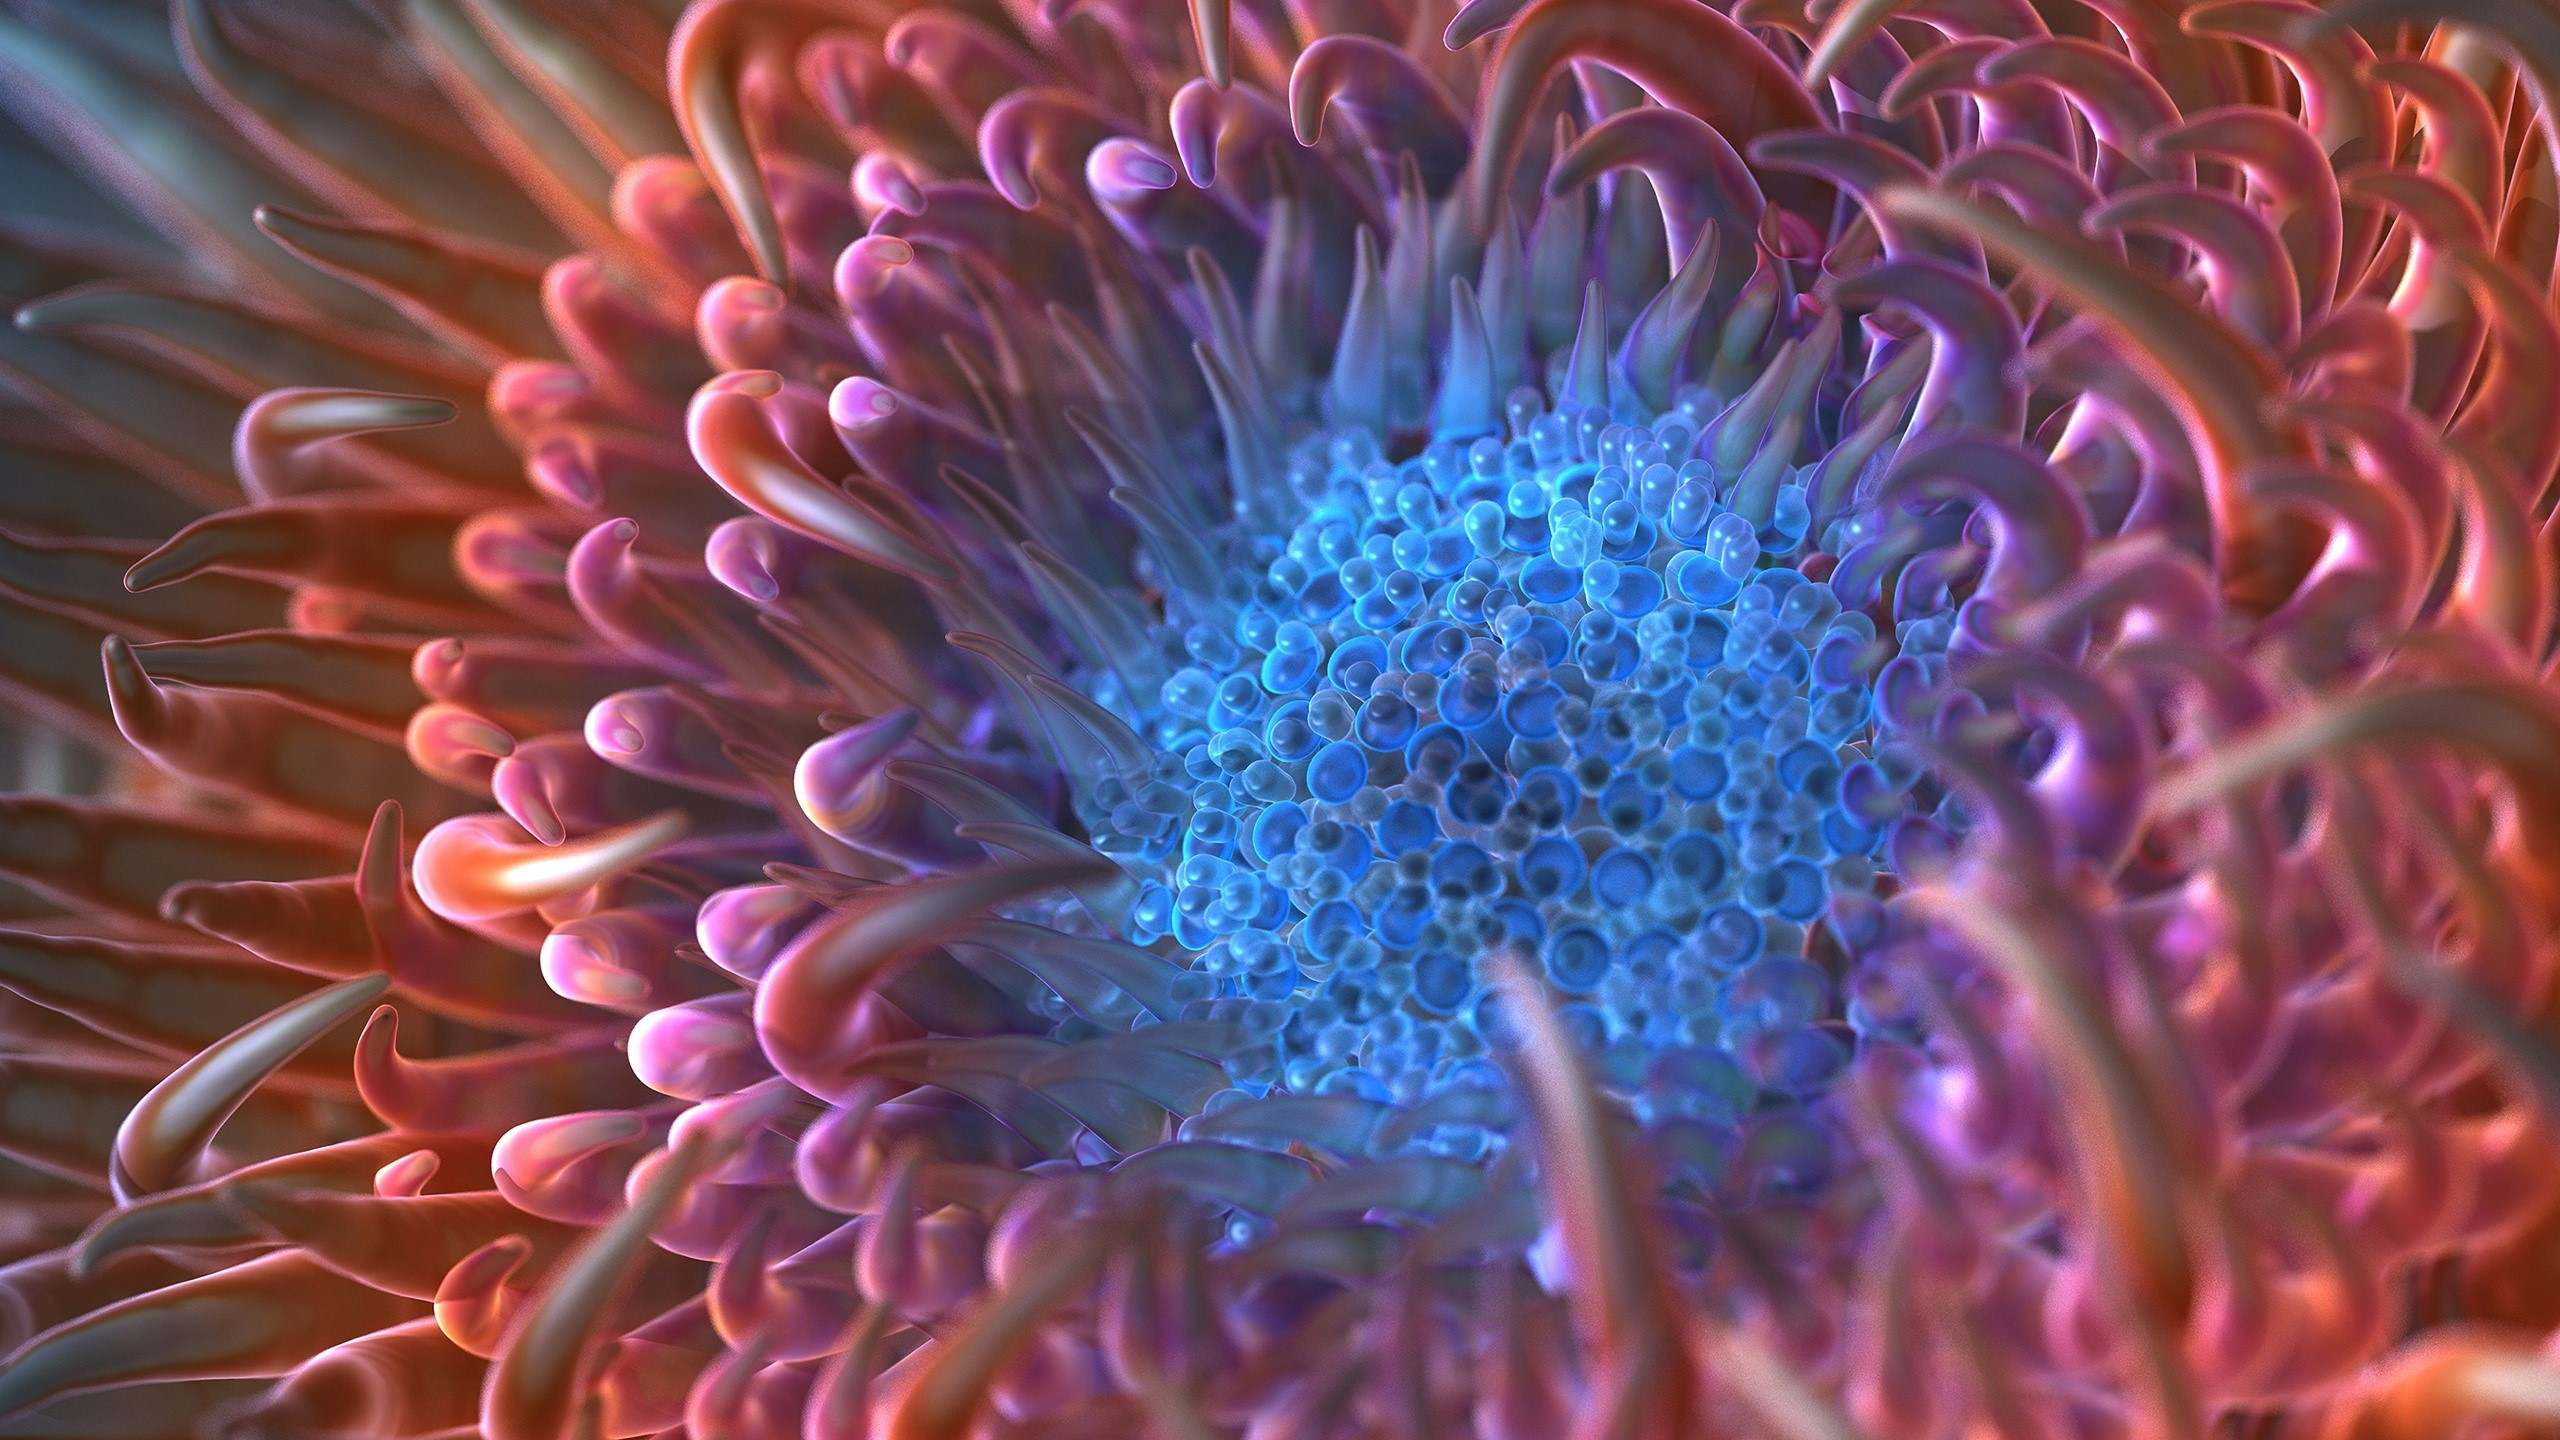 Wallpaper Digital anemone